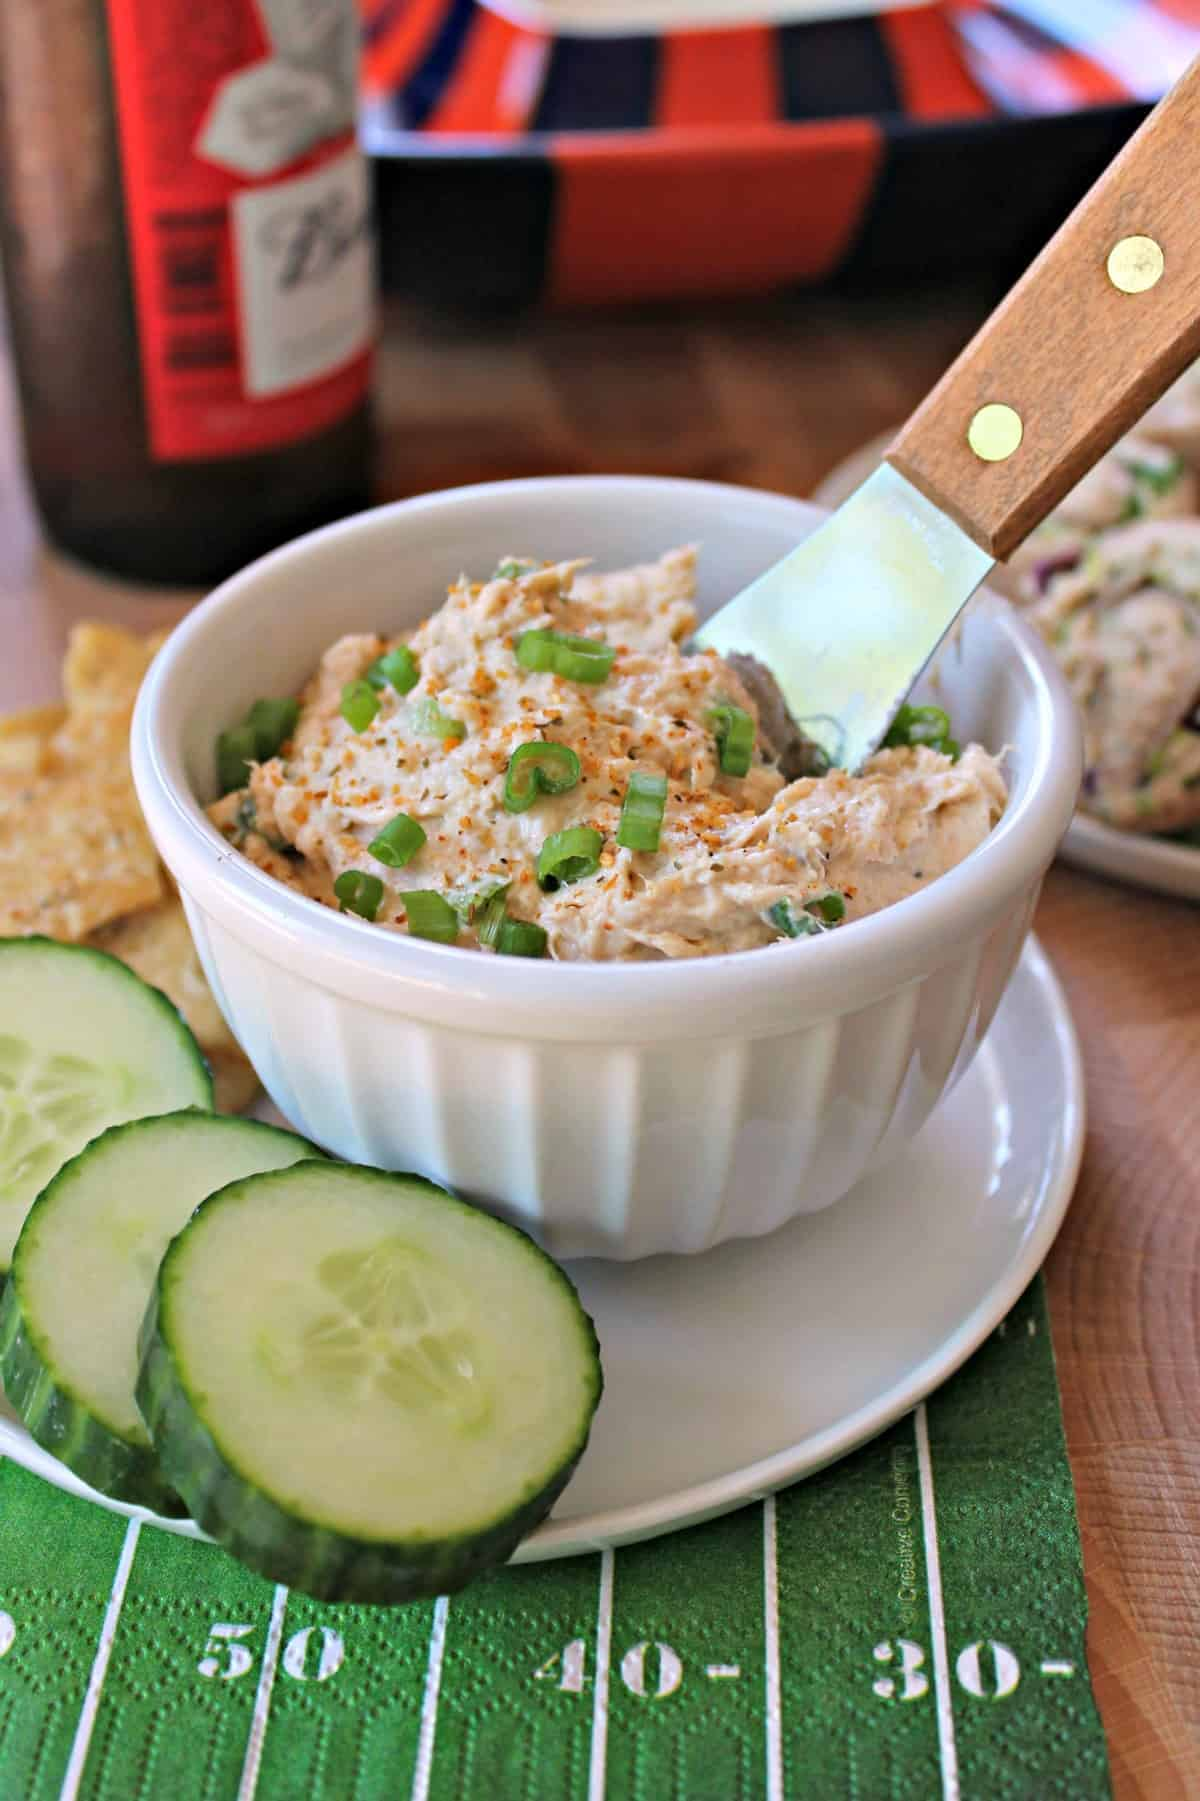 Cajun Salmon Spread! This creamy Cajun-spiced salmon spread makes a great cracker topper for game day or any party! A wonderful recipe to make if you're looking to add something new and different to the typical party snack menu. Bonus: It takes minutes to make!